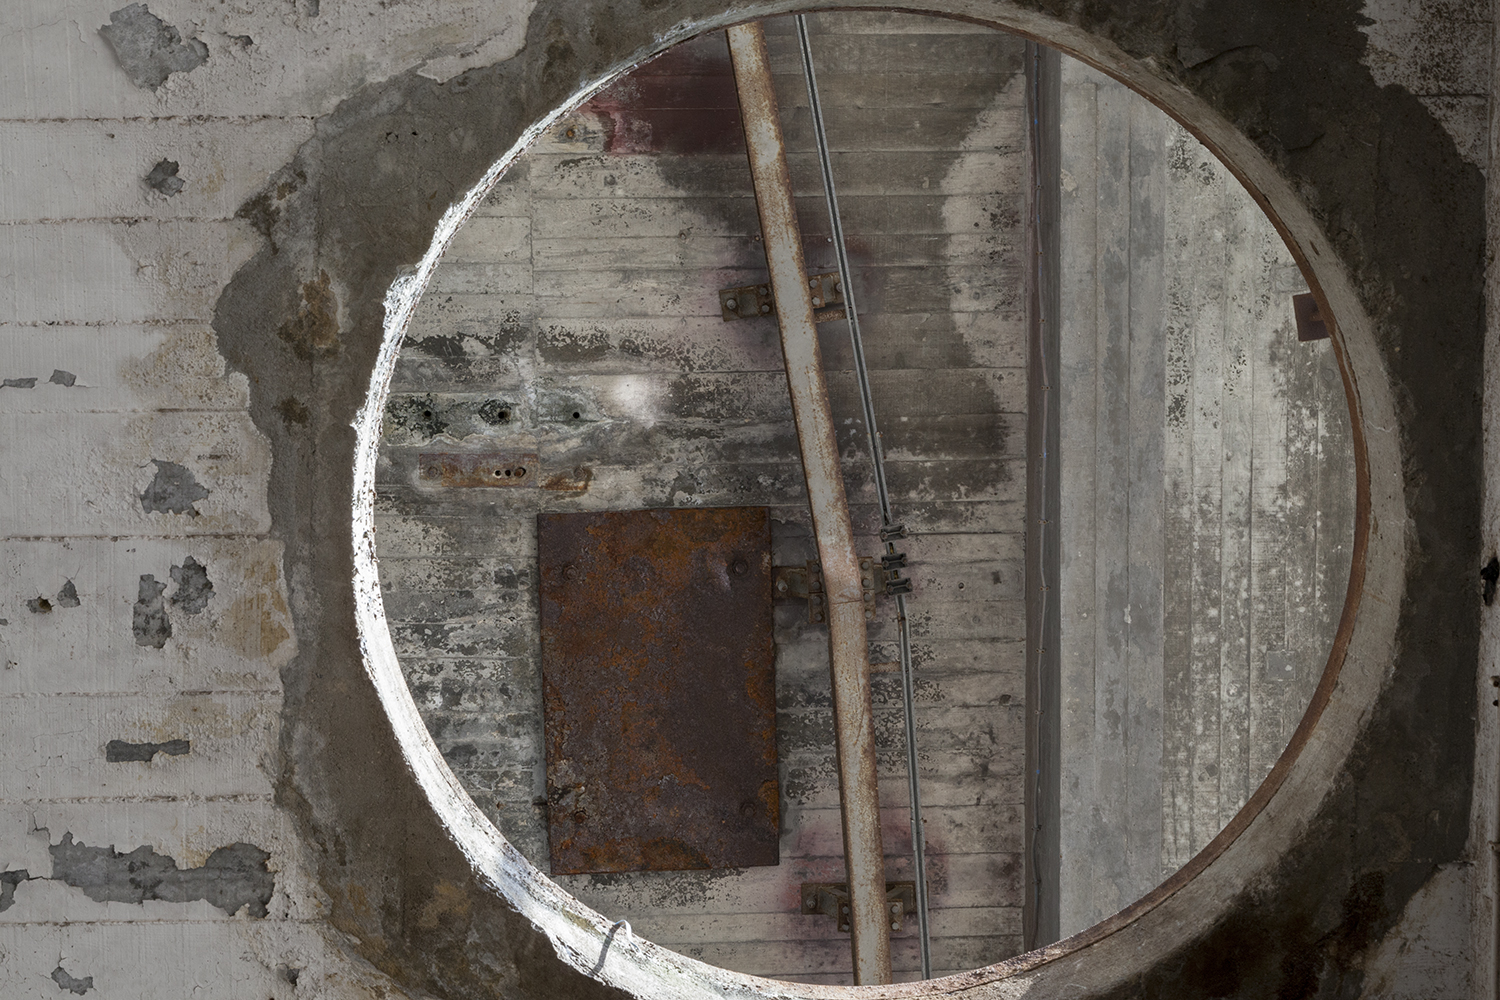 carina martins, vertical ascent - circular opening in the roof in an abandoned factory